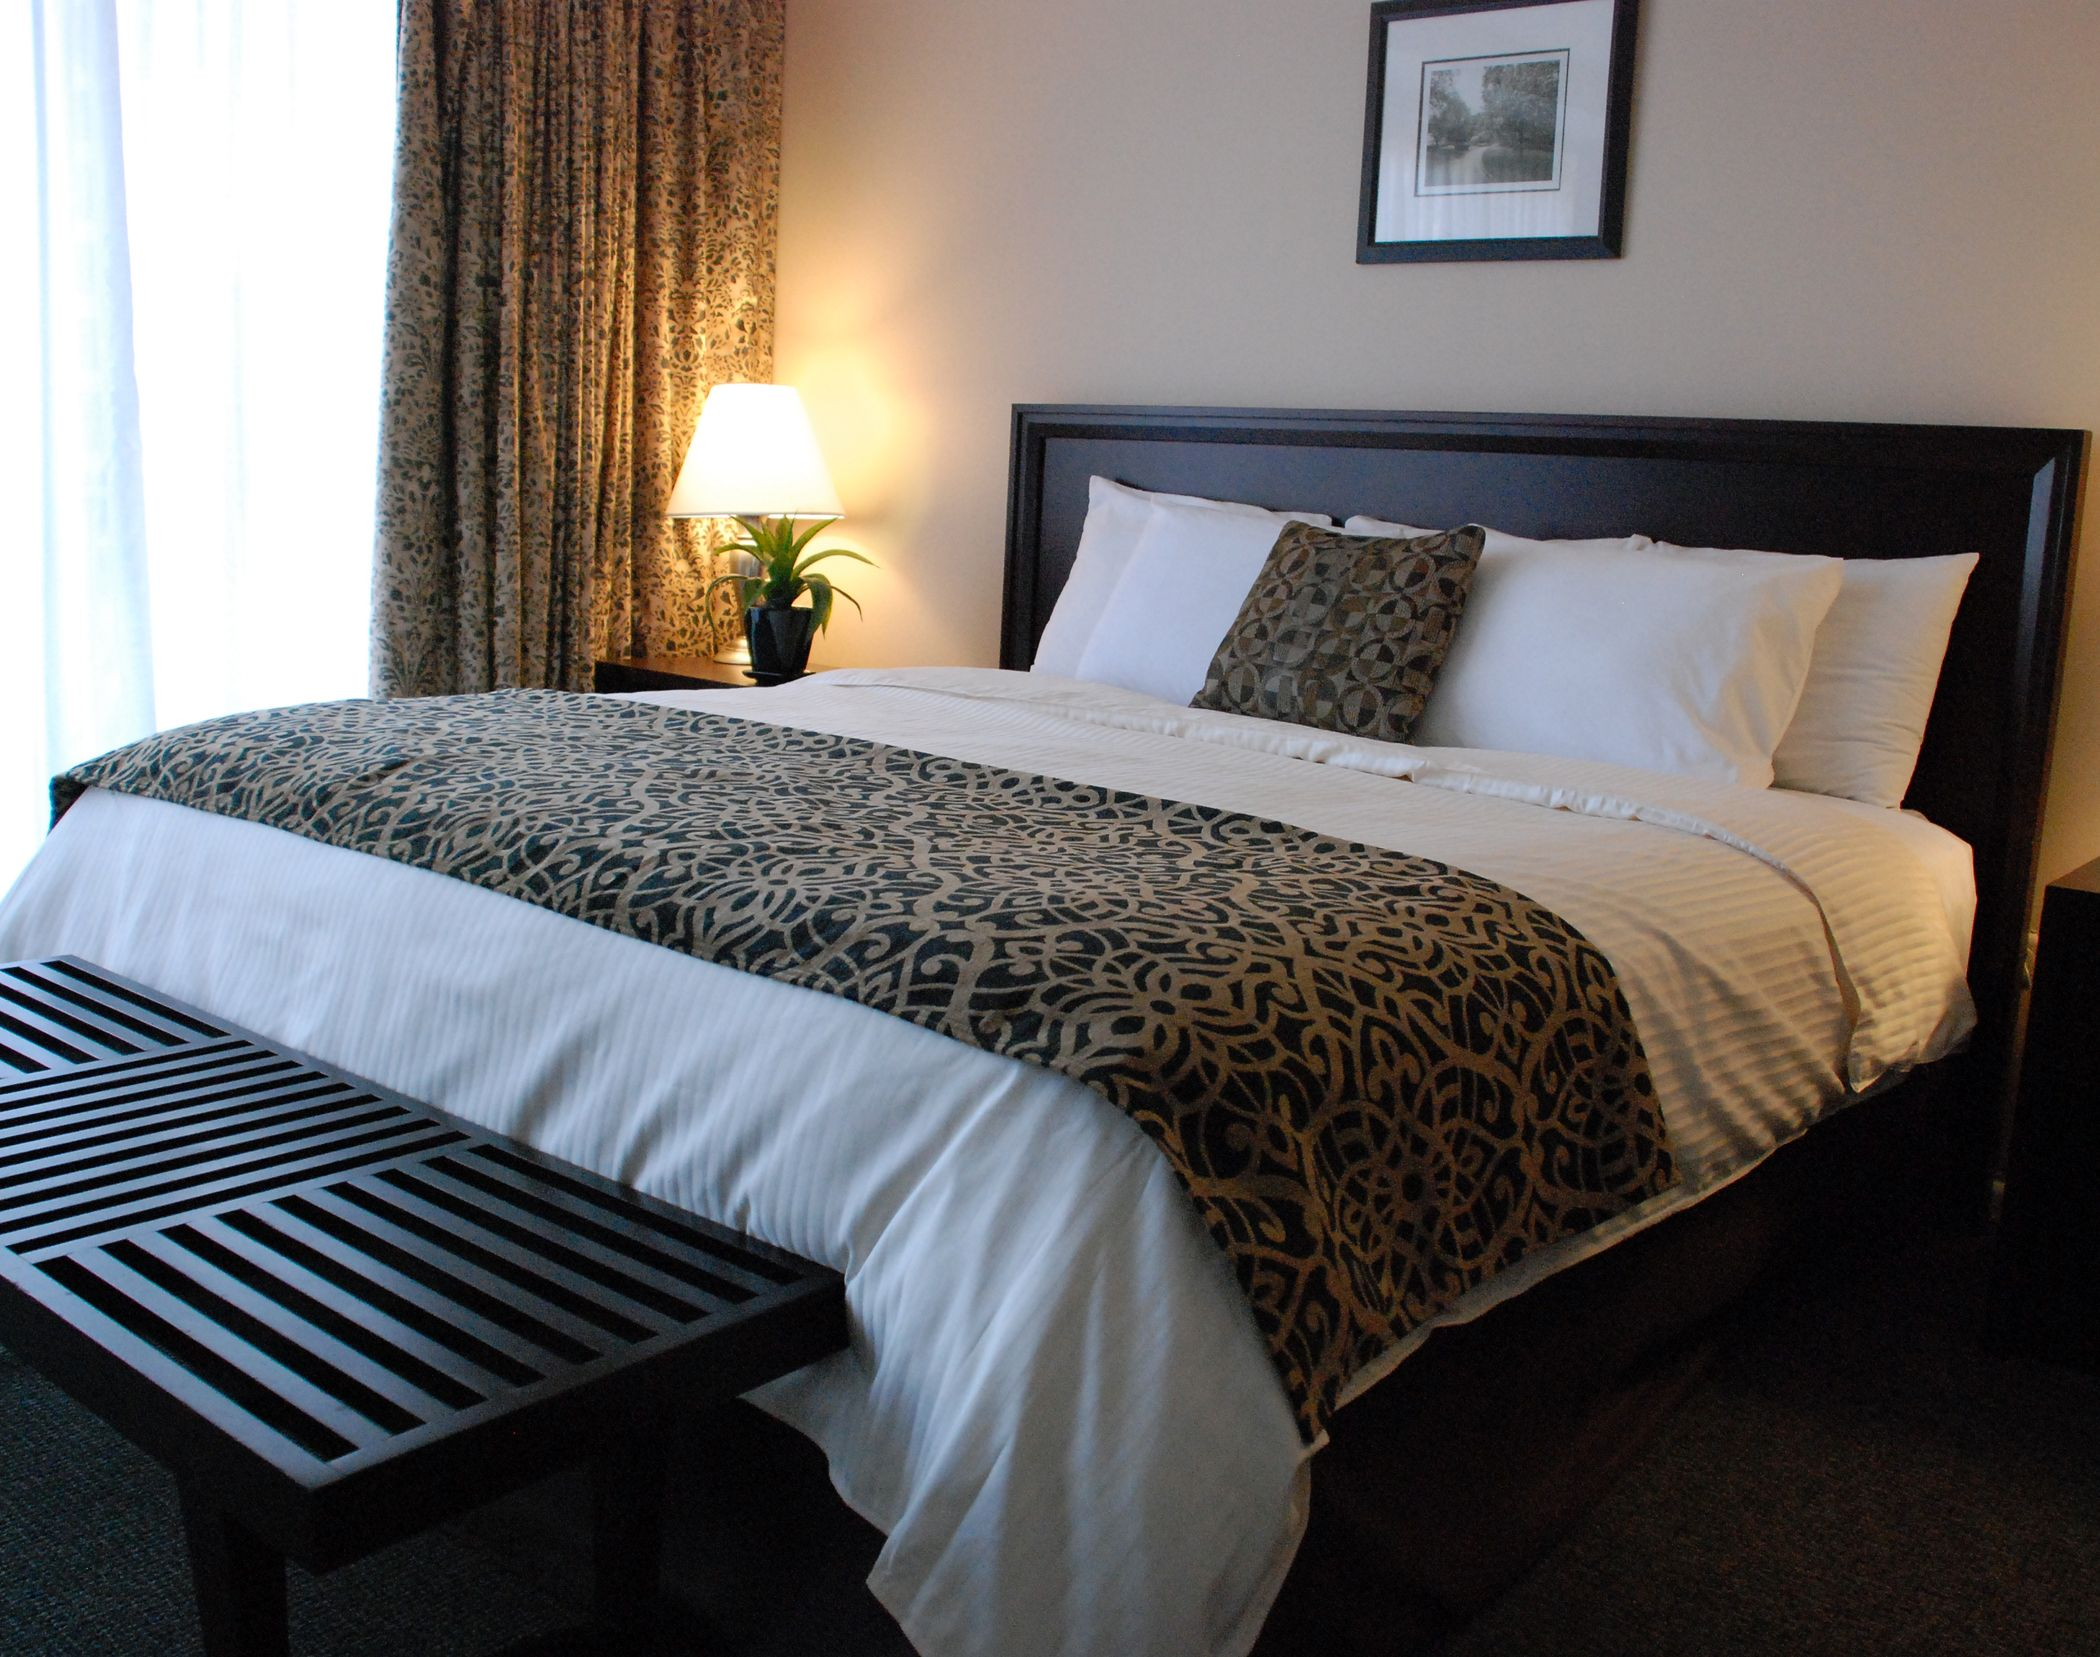 Our One Bedroom Suite With A King Bed At The Windsor Suites Philadelphia The Windsor Suites